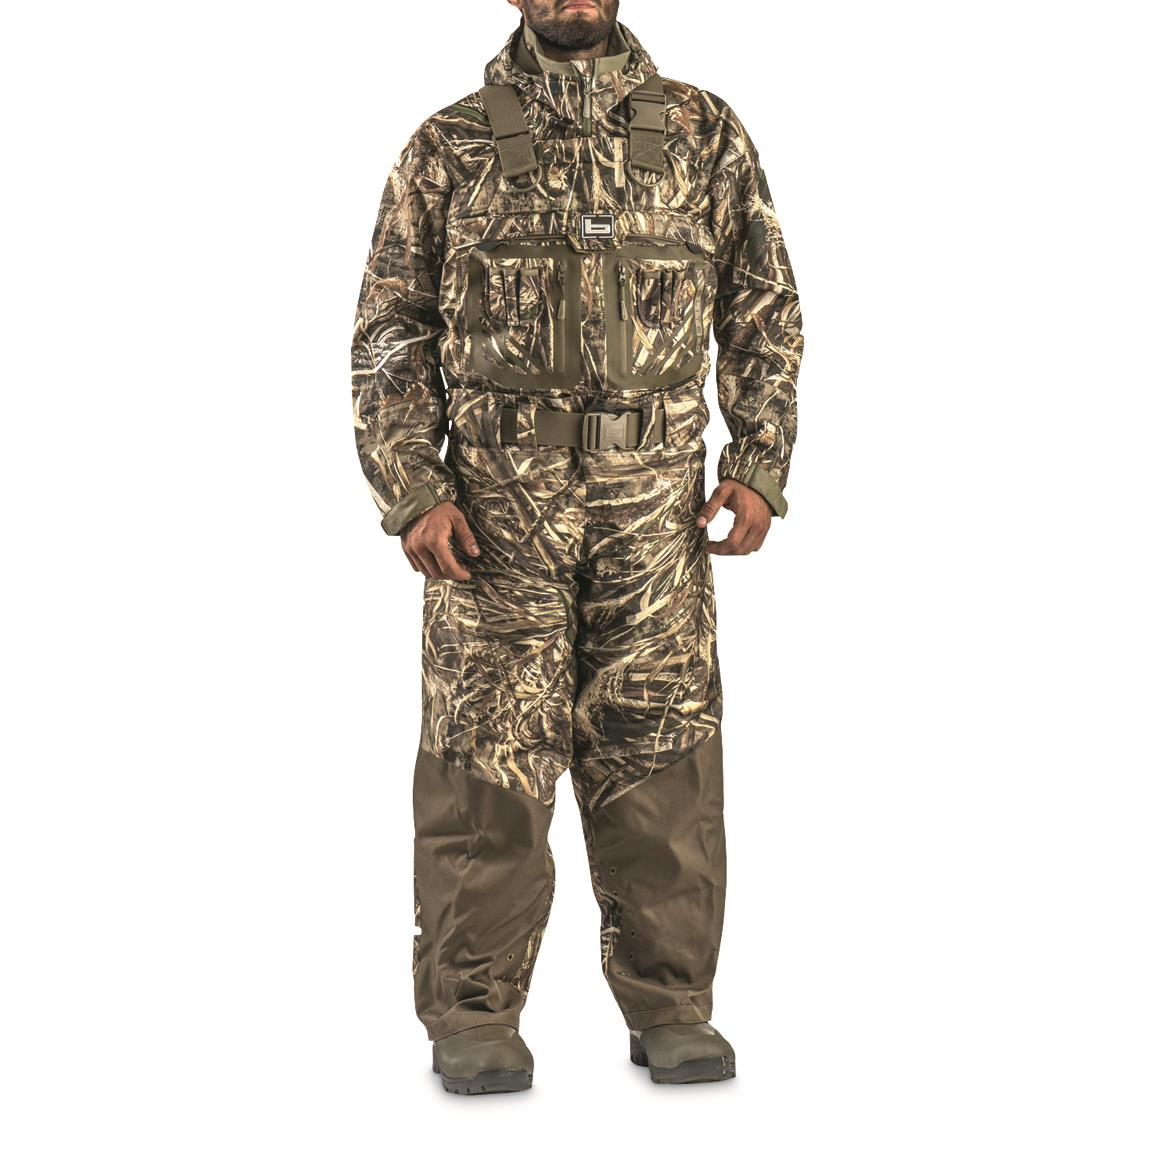 Banded RedZone ELITE 2.0 Insulated Breathable Bootfoot Chest Waders, 1,600-gram, Stout Sizes, Realtree MAX-5®